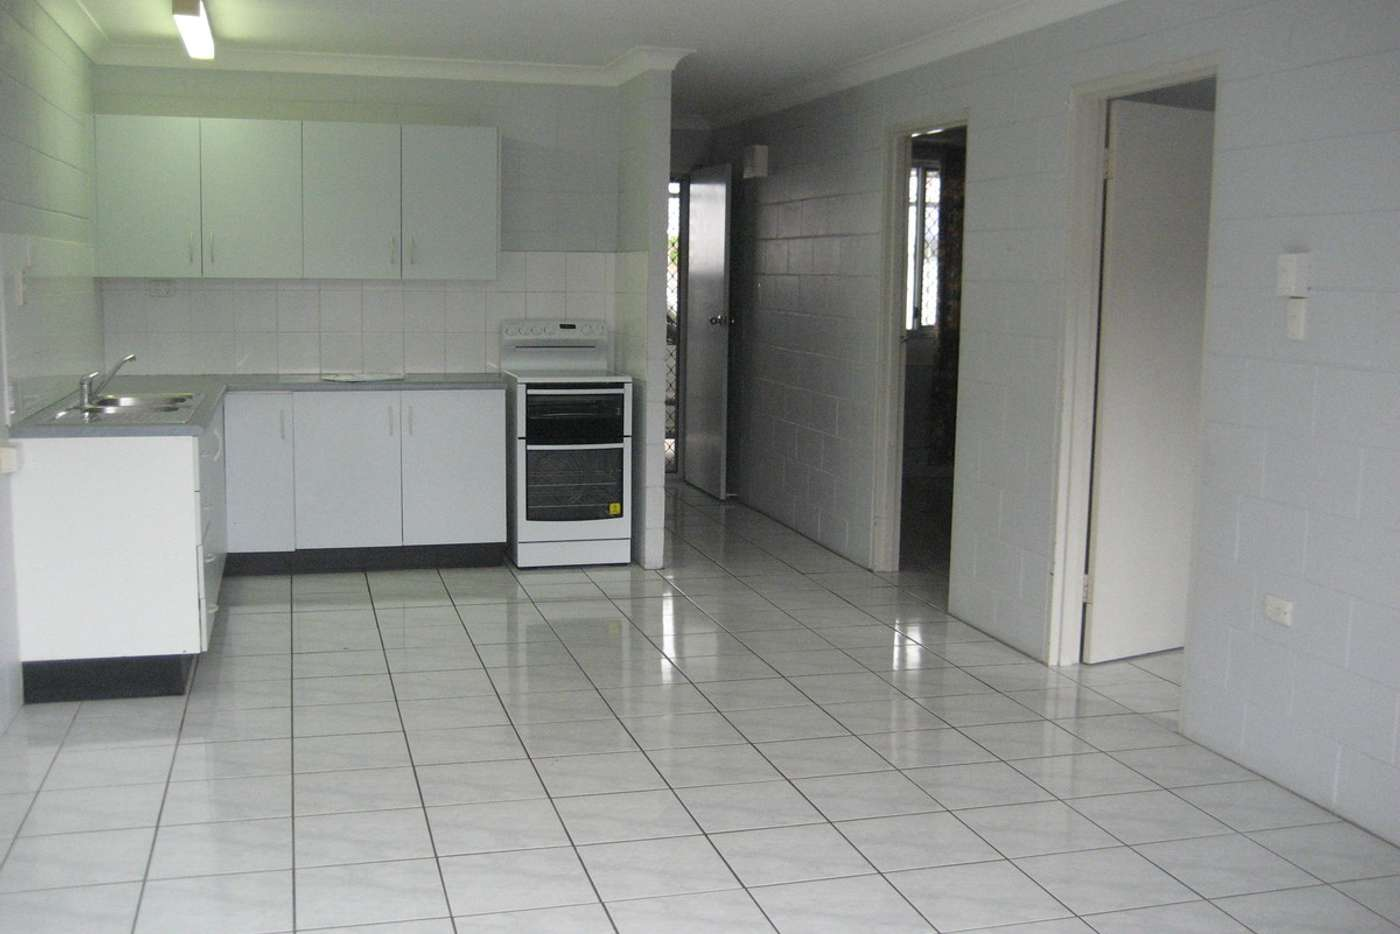 Main view of Homely flat listing, 3/15 Rose Street, North Ward QLD 4810